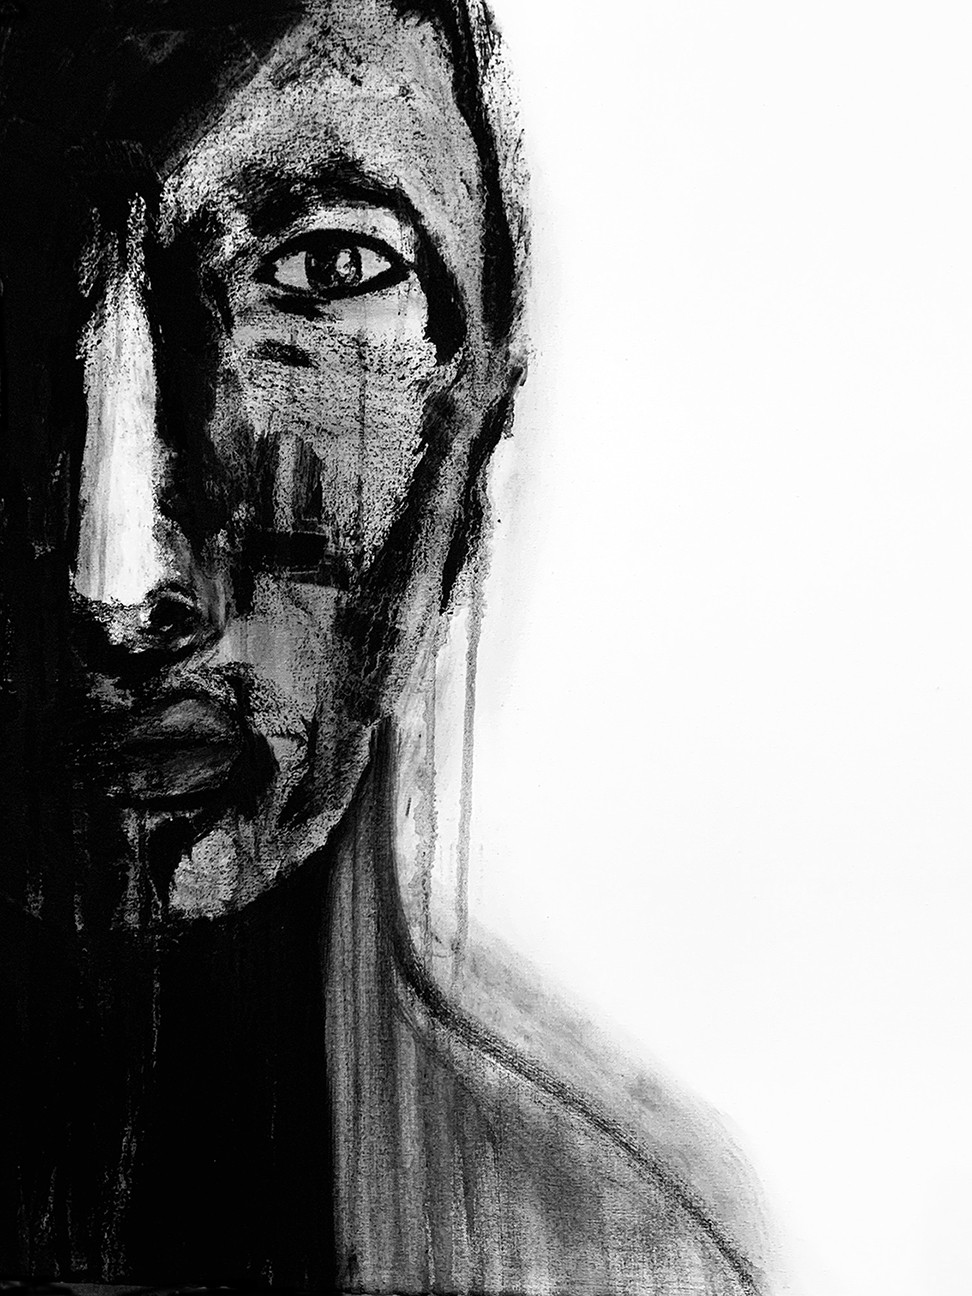 Cherie Redlinger, Black Tears, 2021, Charcoal, water and acrylic on canvas, 30x20 inches